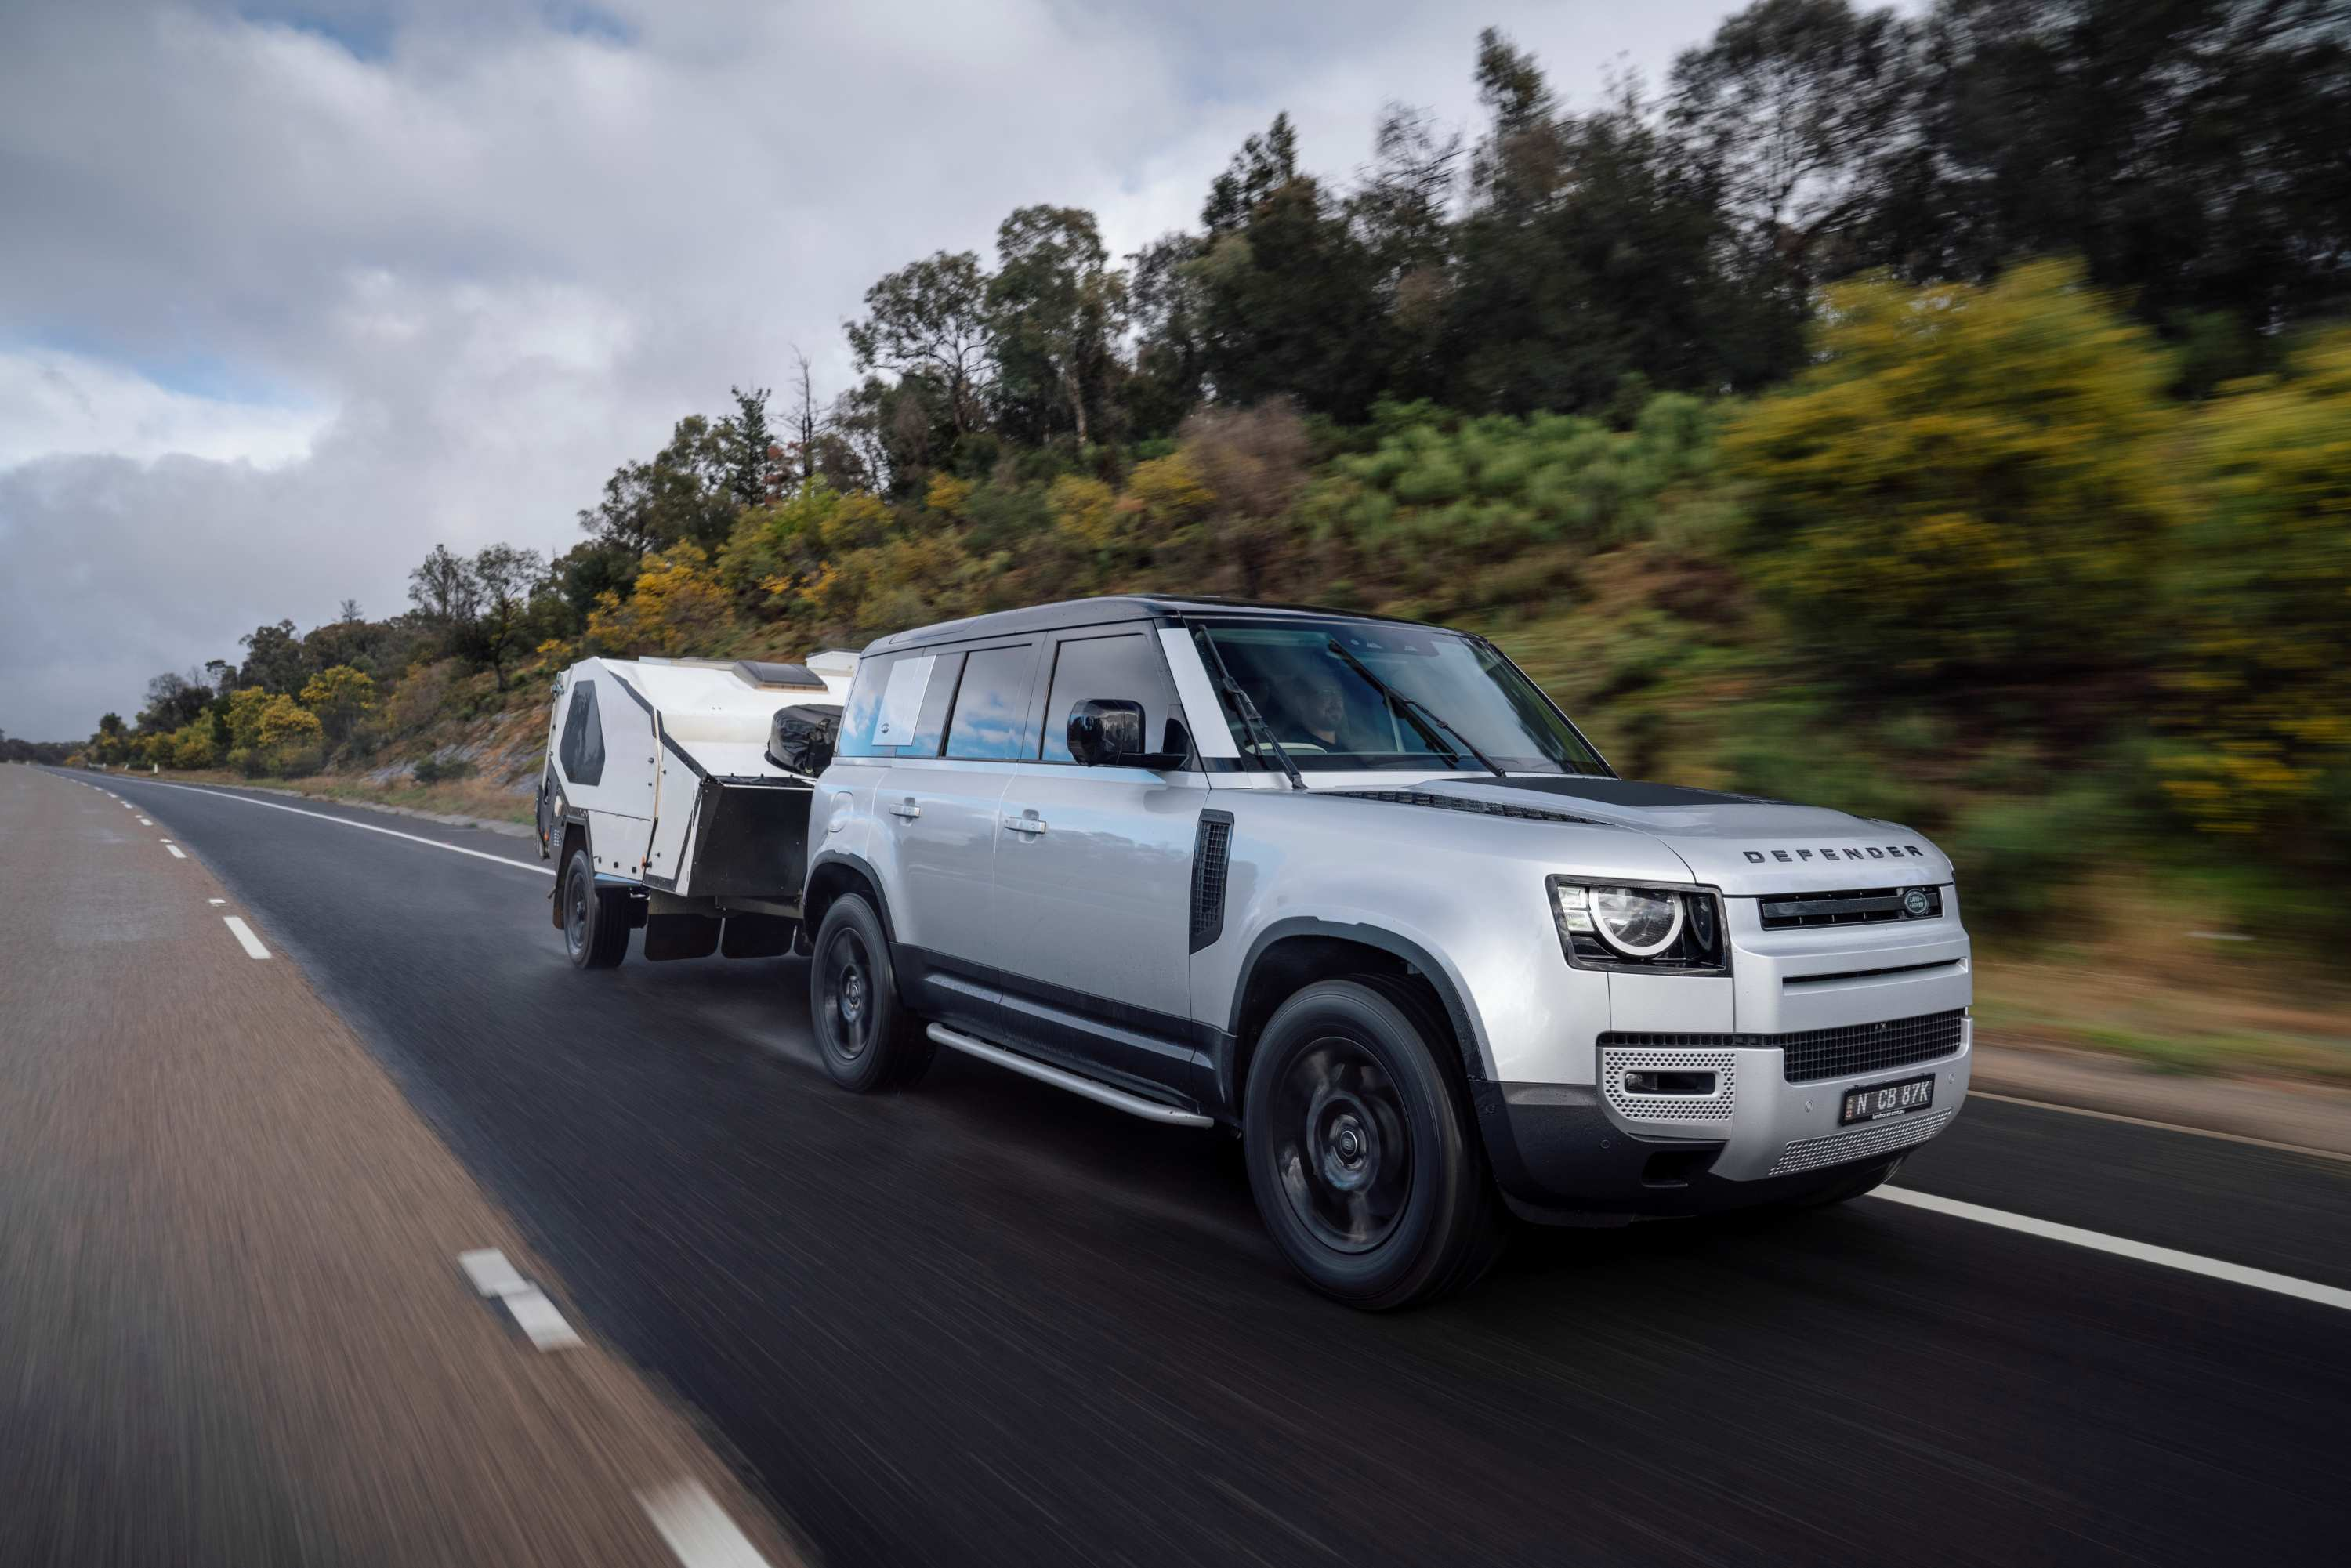 Land Rover Defender towing